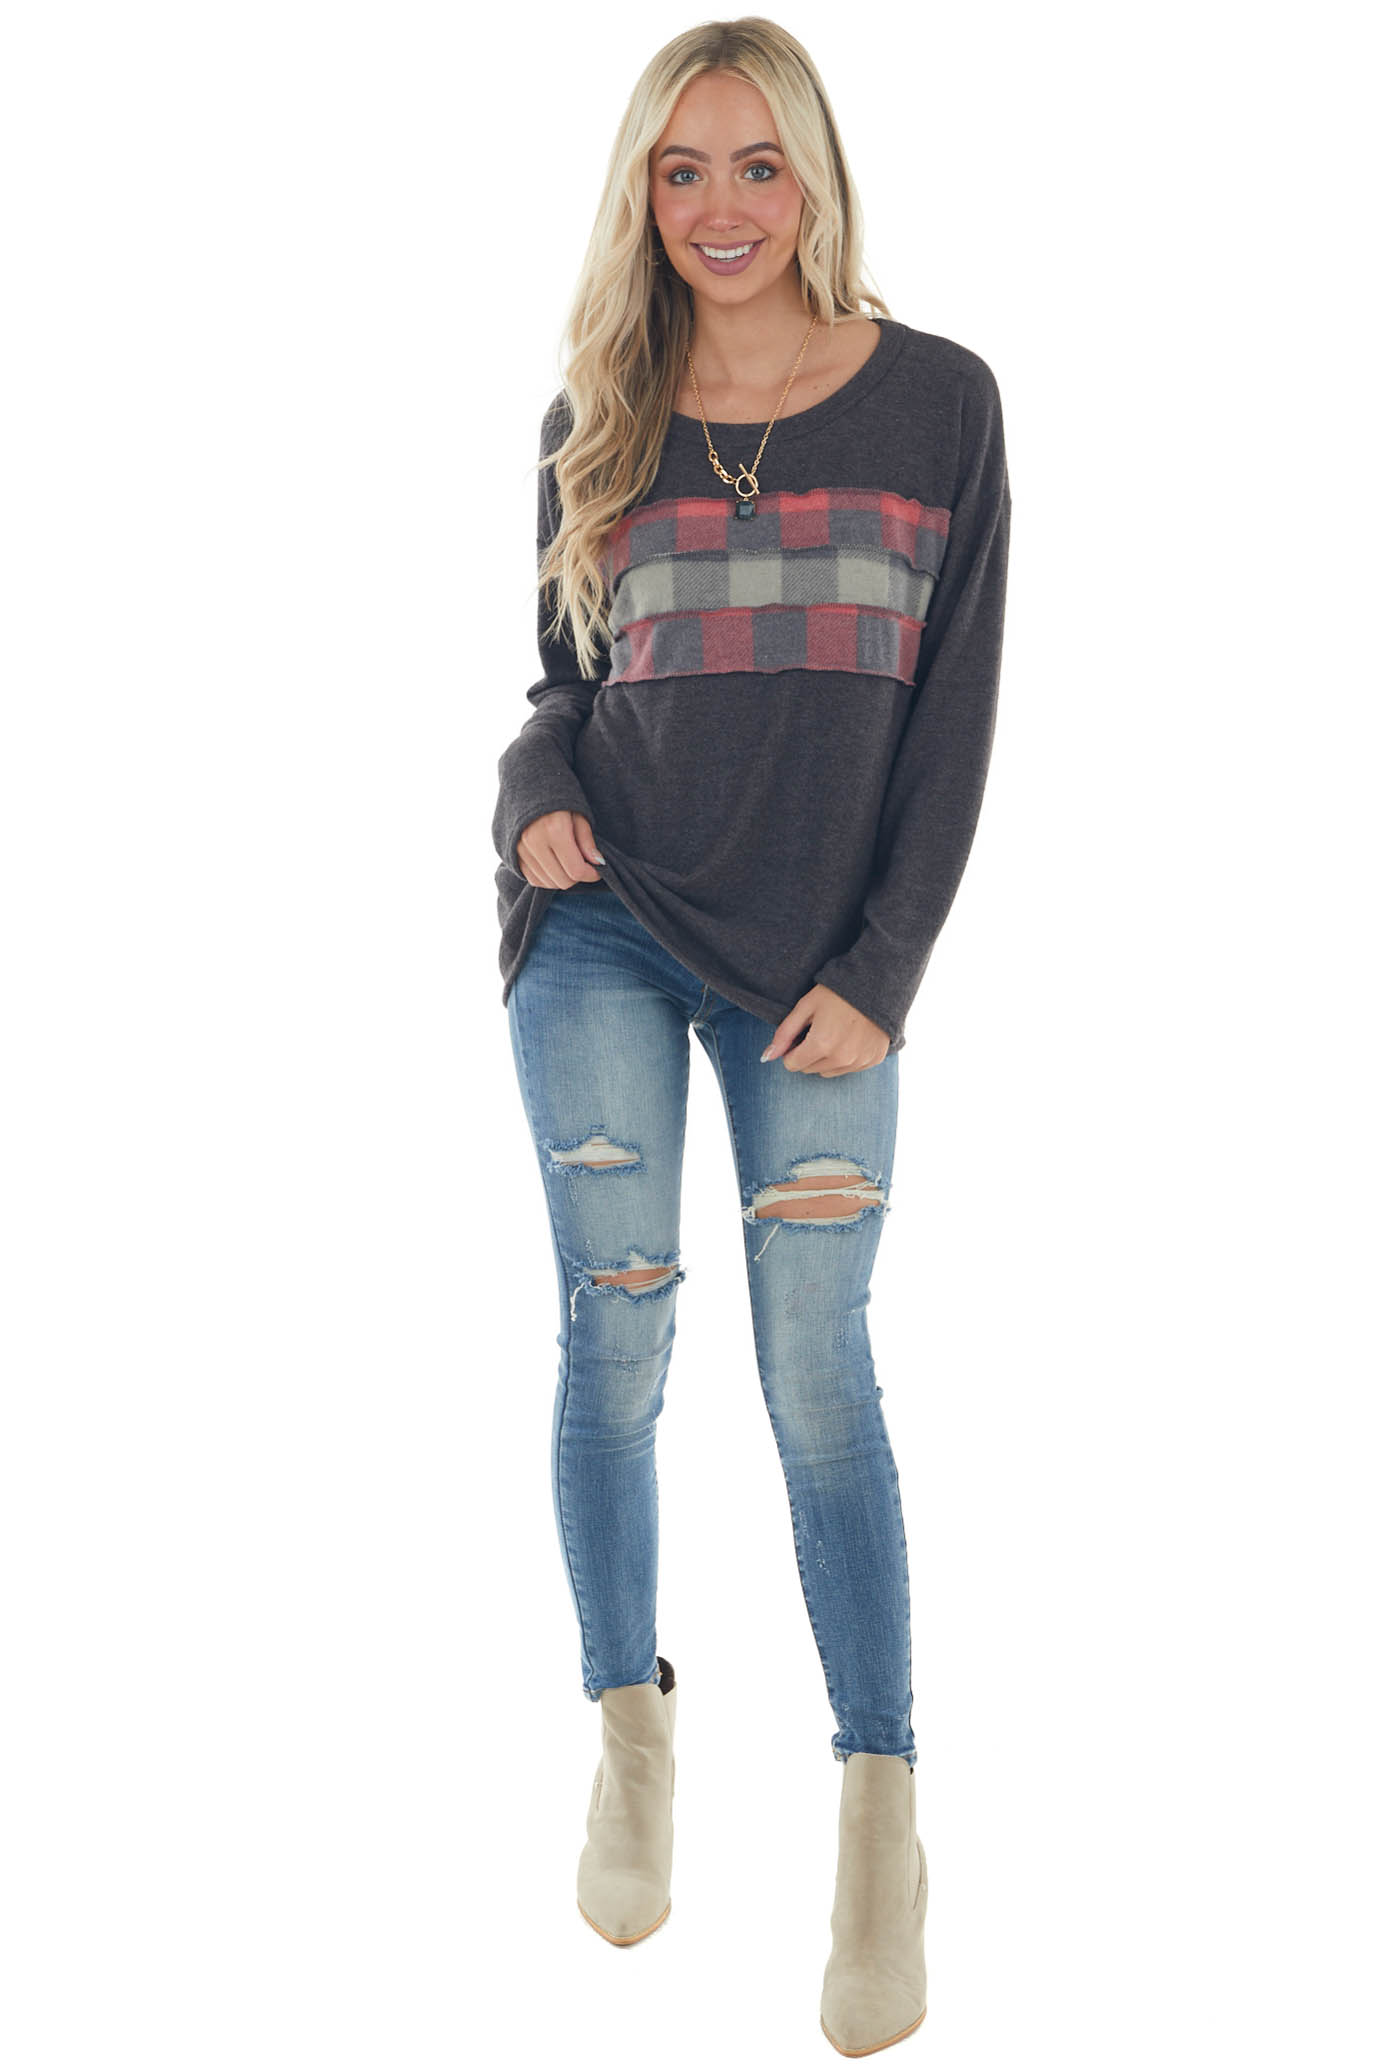 Charcoal Brushed Knit Top with Plaid Contrast